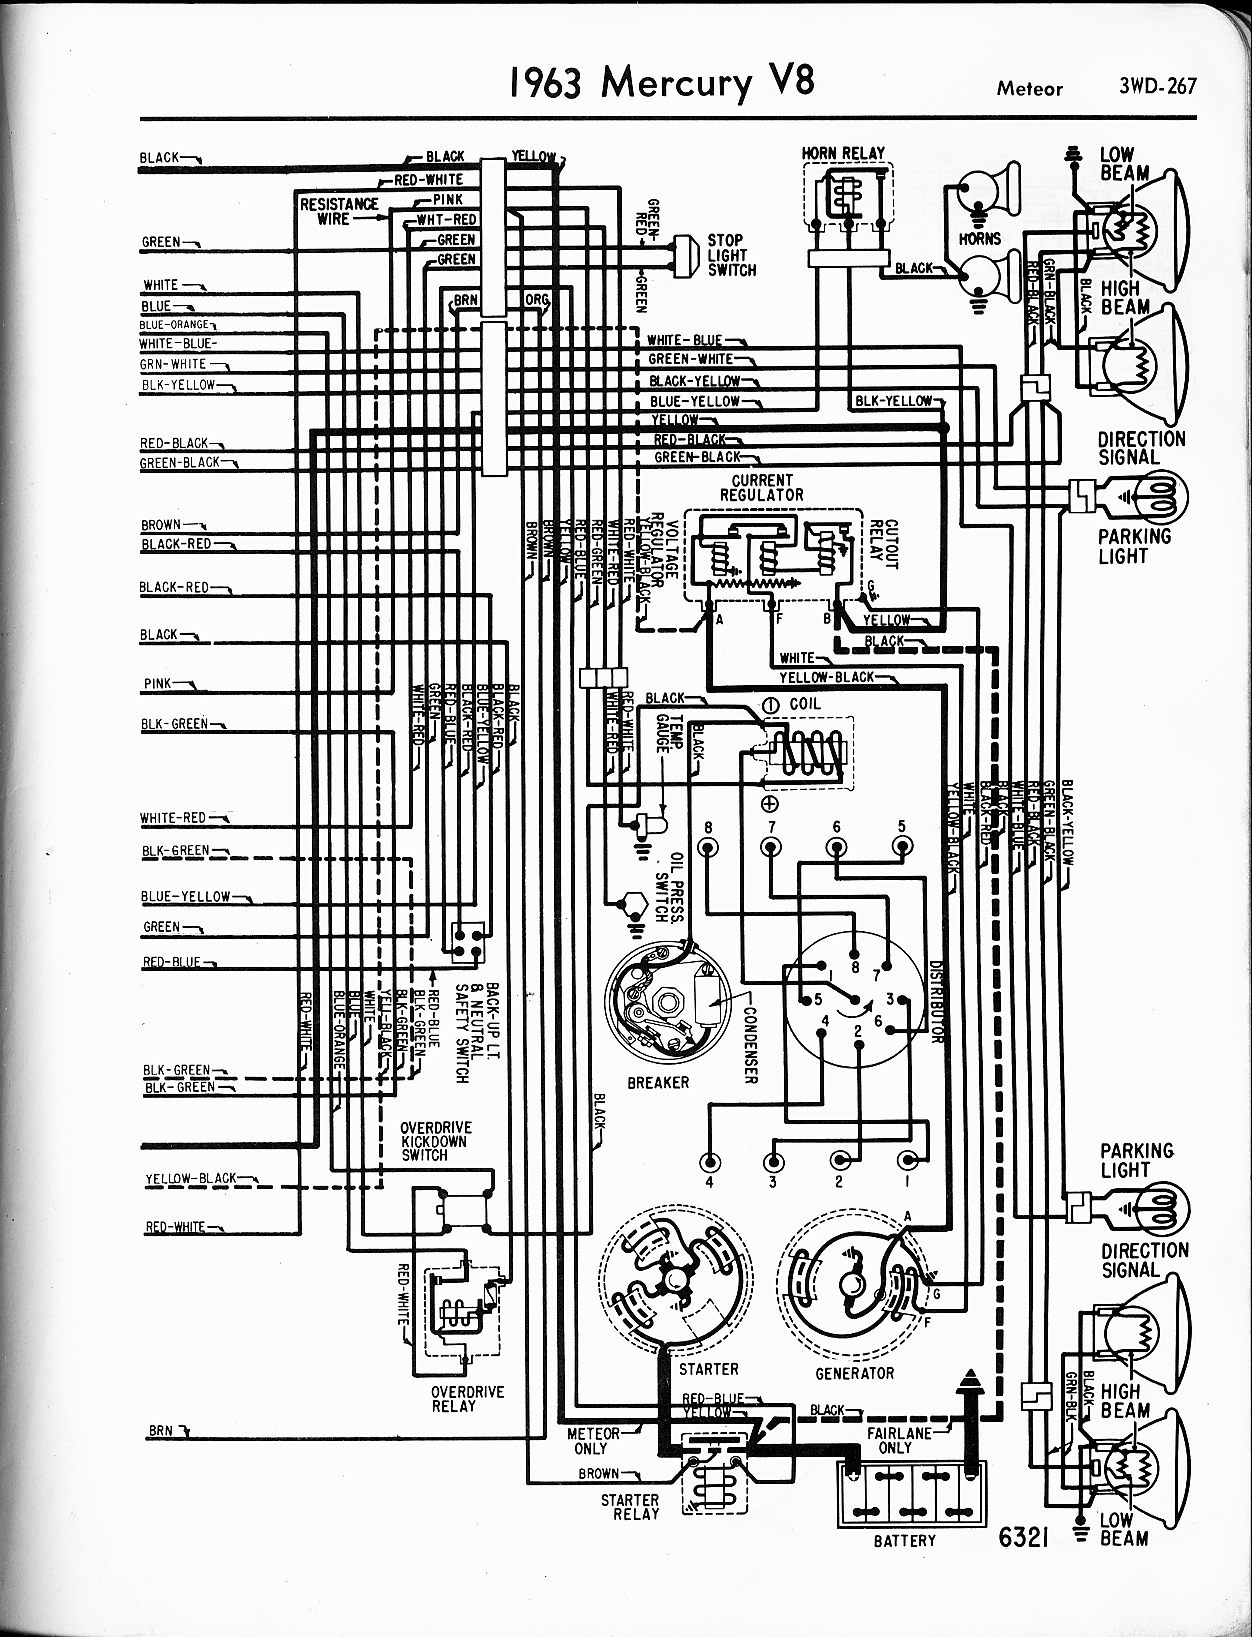 Mercury wiring diagrams the old car manual project mercury 115 wiring diagram 1963 mercury et wiring diagram